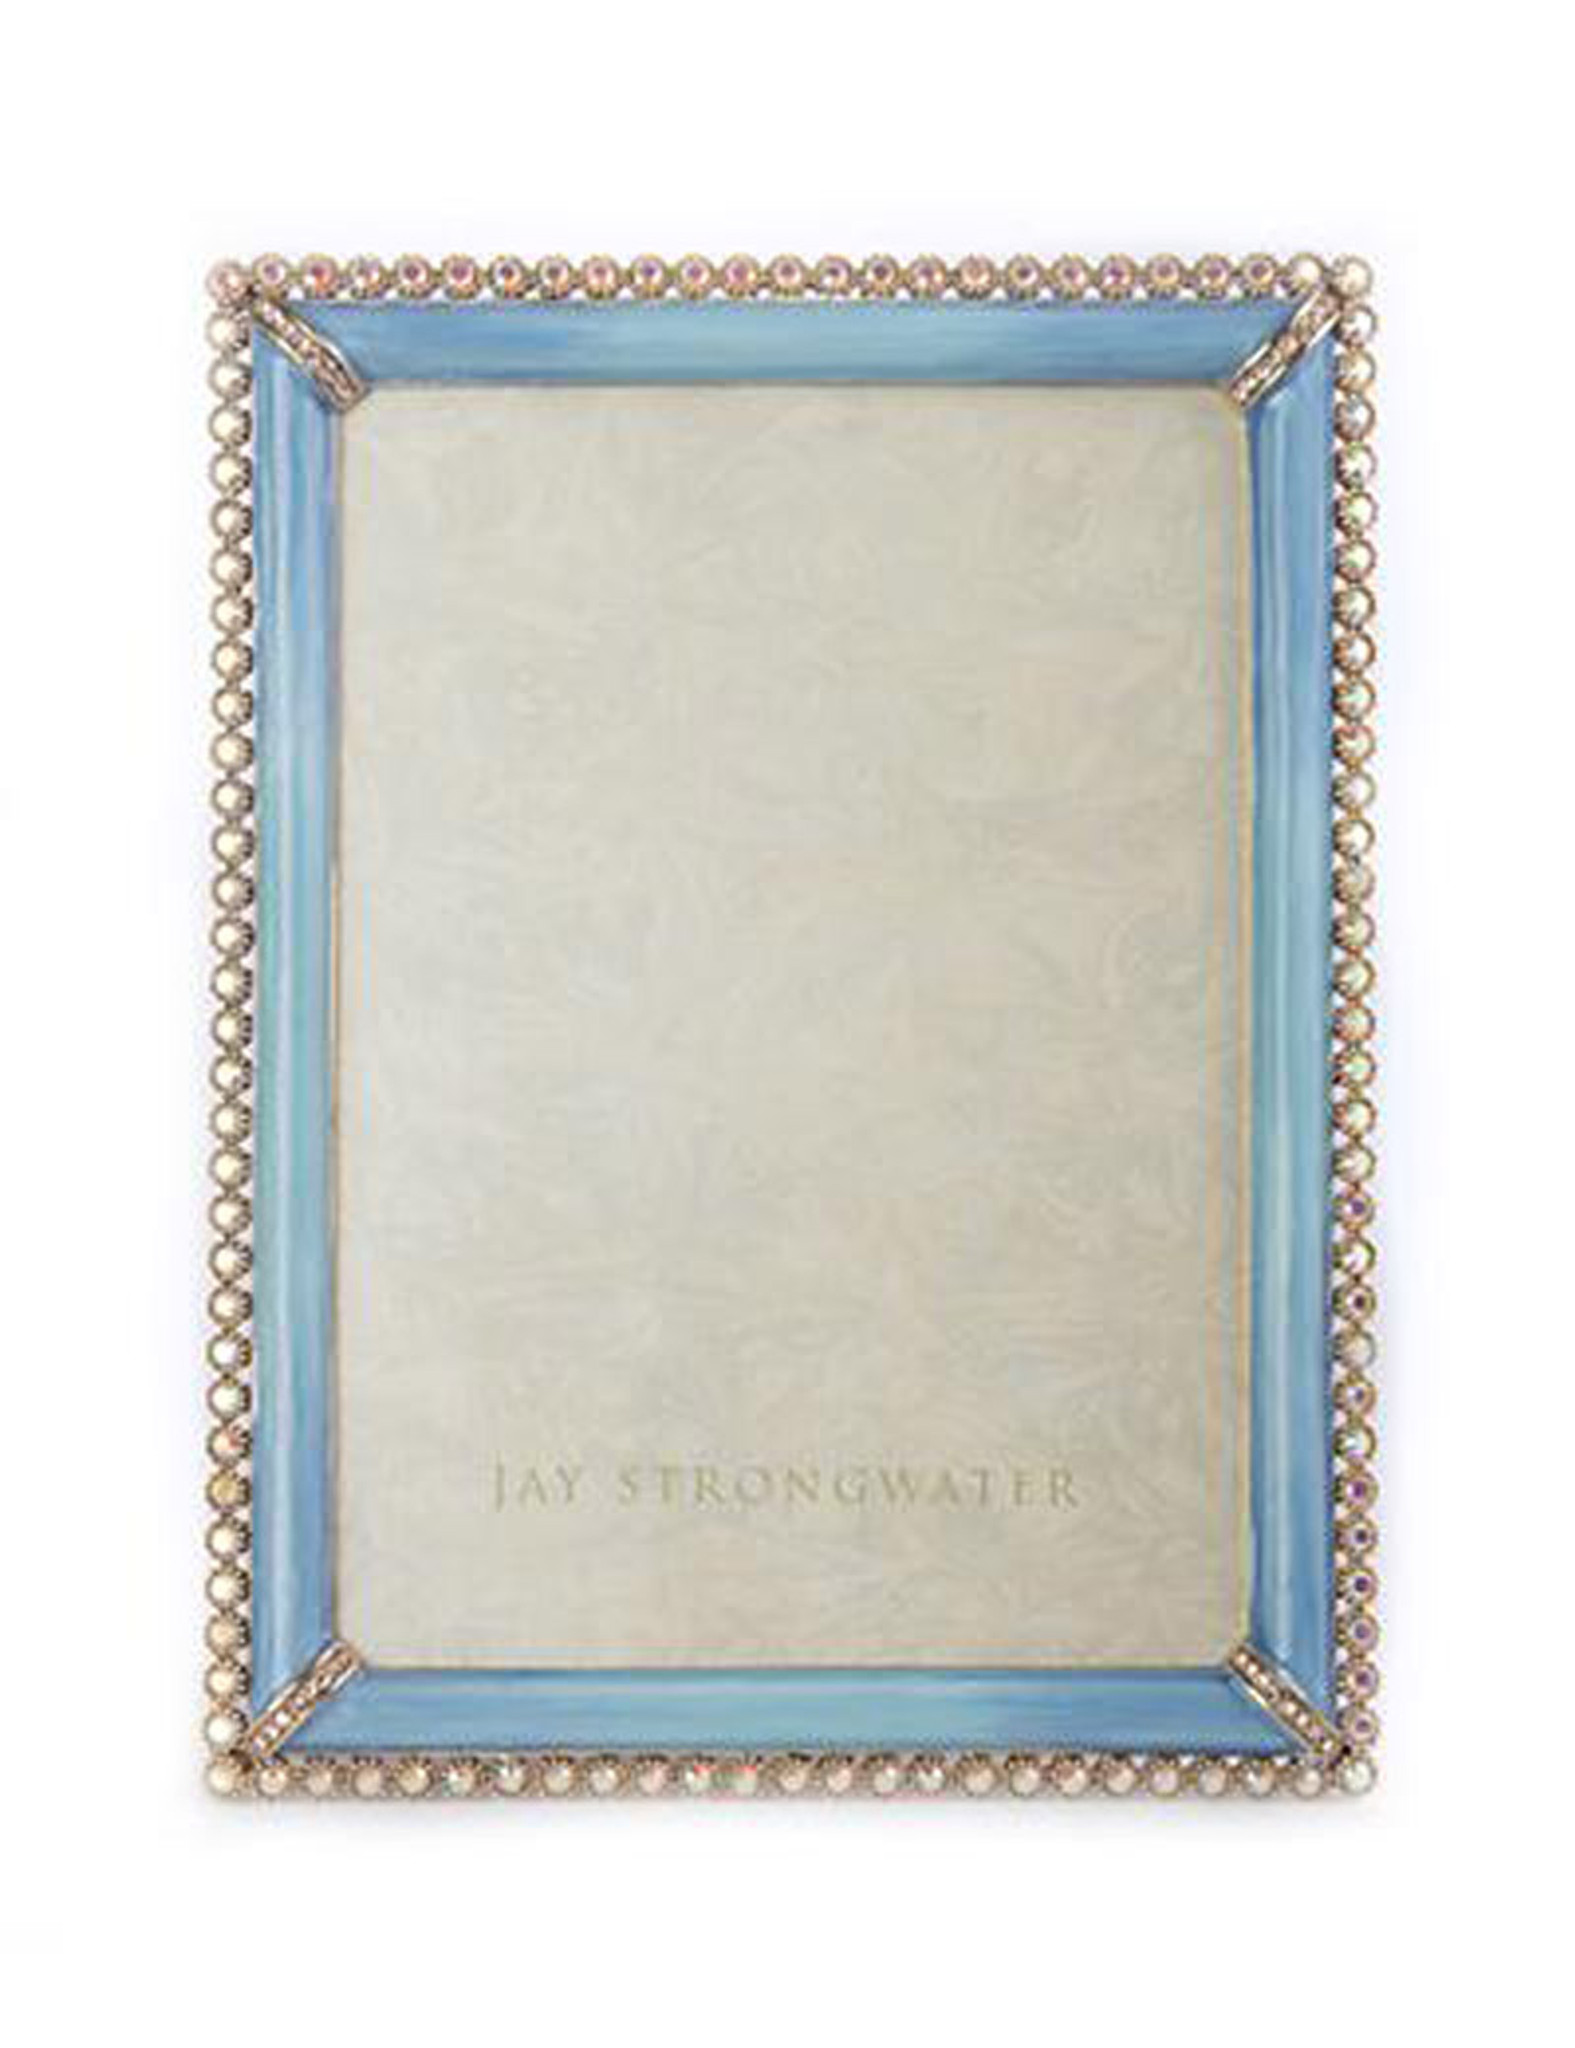 Jay Strongwater Lucas Periwinkle Stone Edge 5 x 7 Inch Picture Frame ...